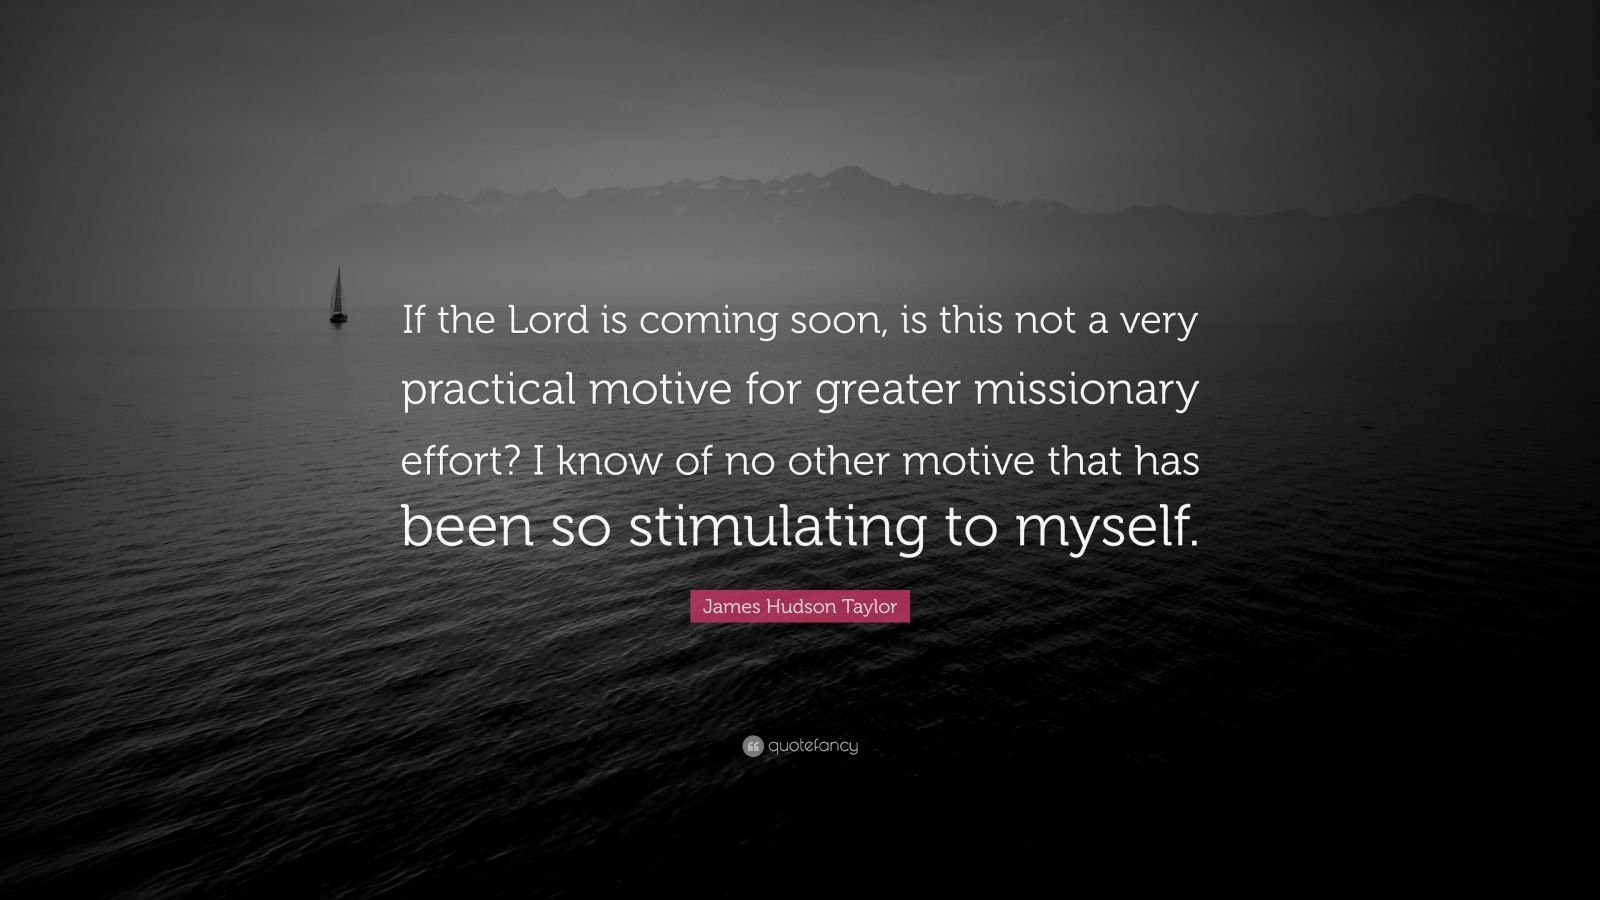 James Hudson Taylor Quote If The Lord Is Coming Soon Is This Not A Very Practical Motive For Greater Missionary Effort I Know Of No Other Motive 7 Wallpapers Quotefancy